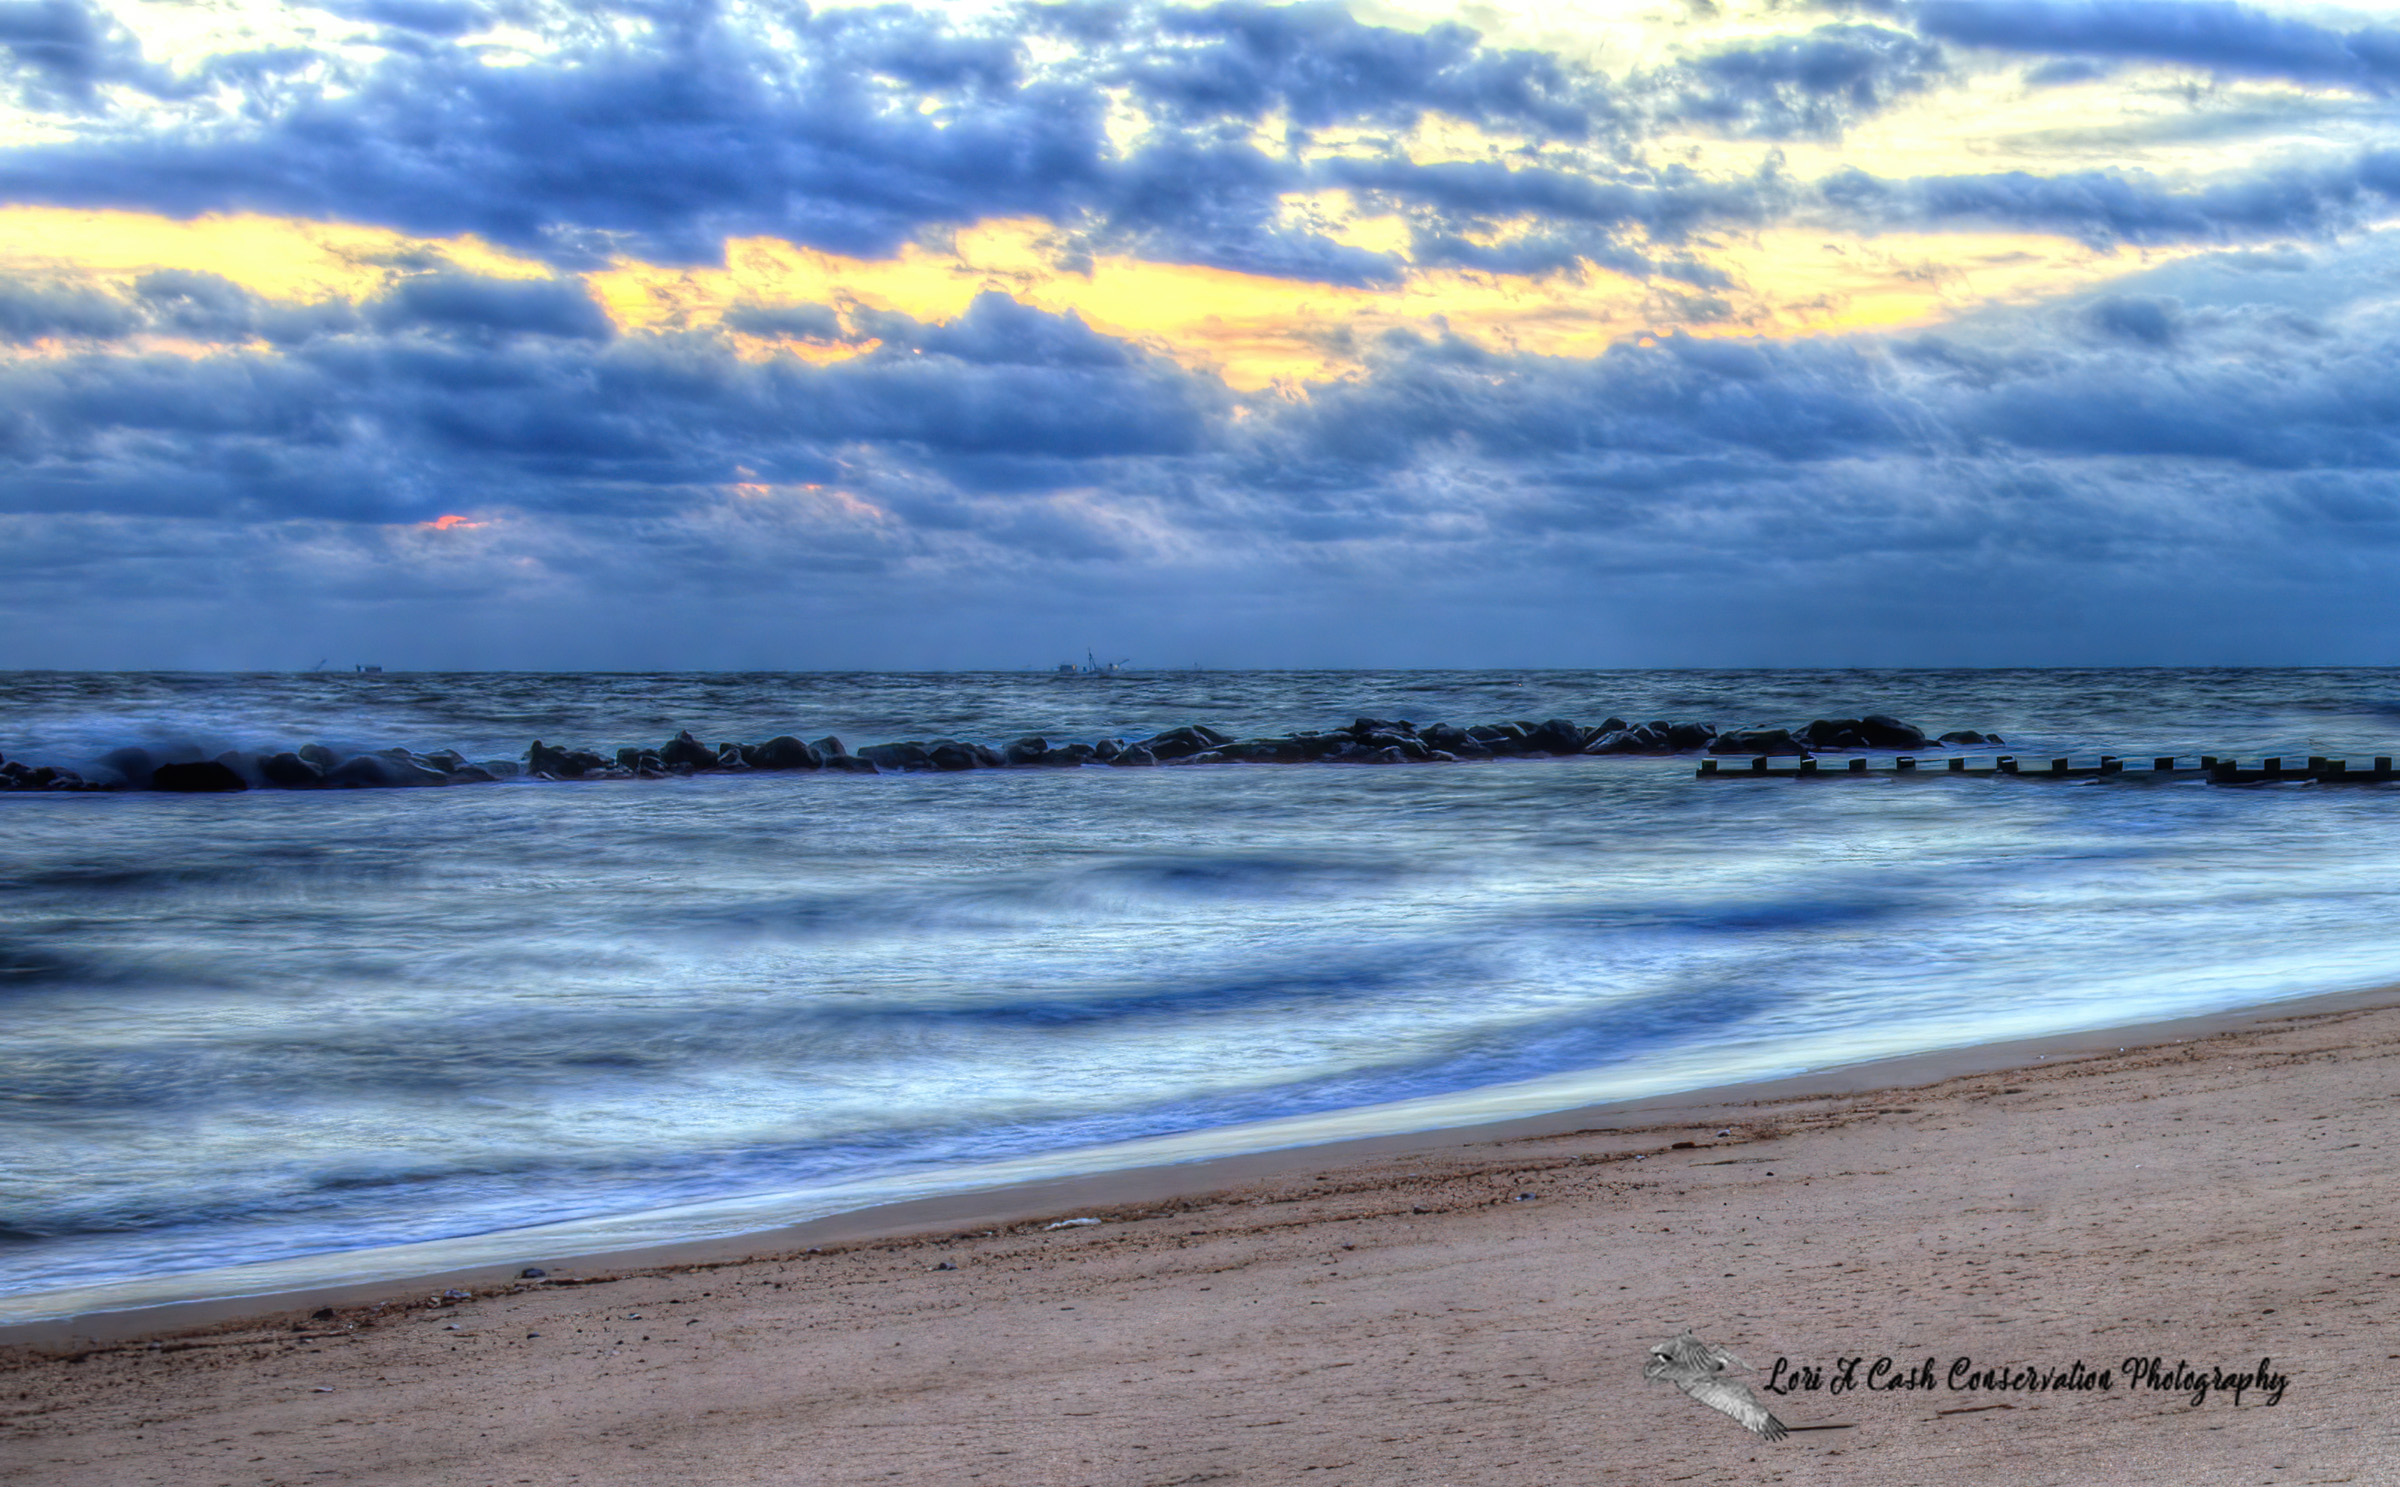 Morning clouds in the blue skies over the beach at Ocean View in Norfolk, Virginia.